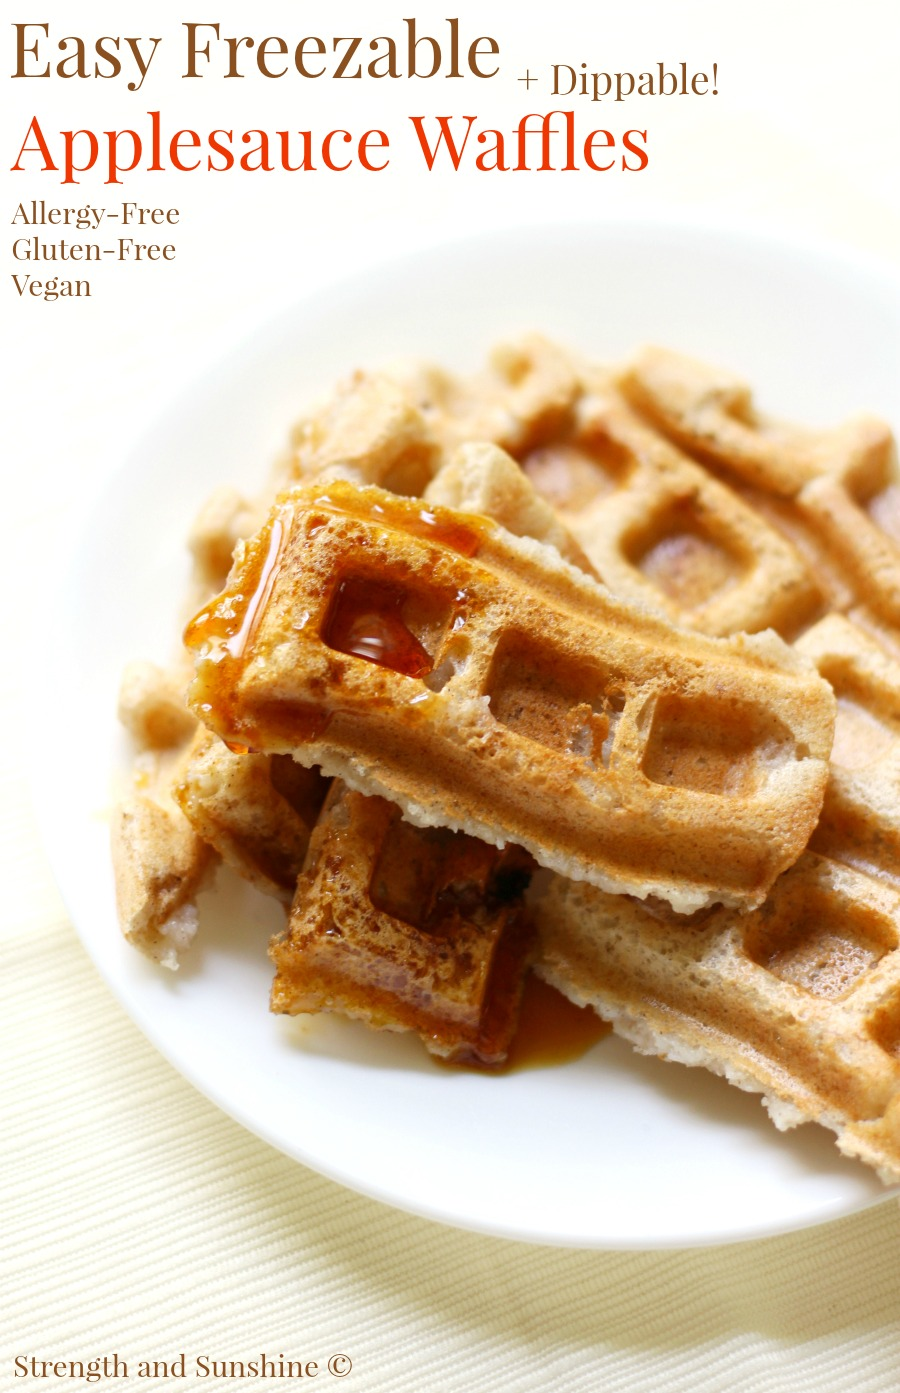 Easy Freezable Applesauce Waffles from Strength & Sunshine